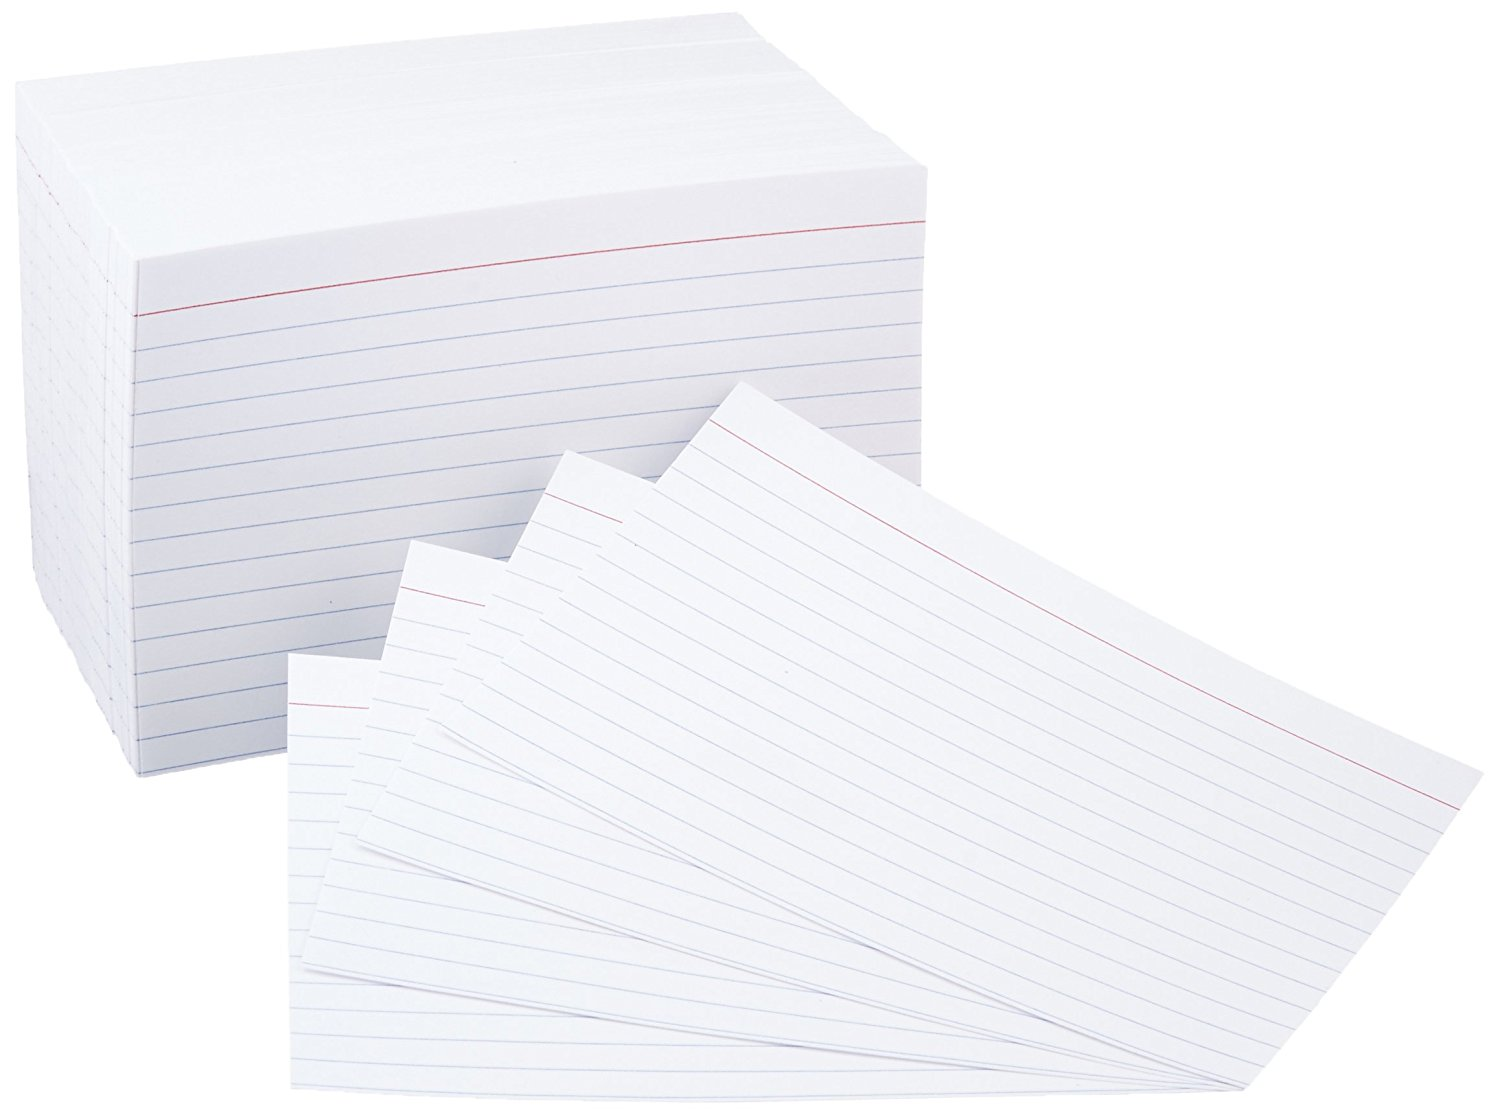 500 index cards sold on amazon